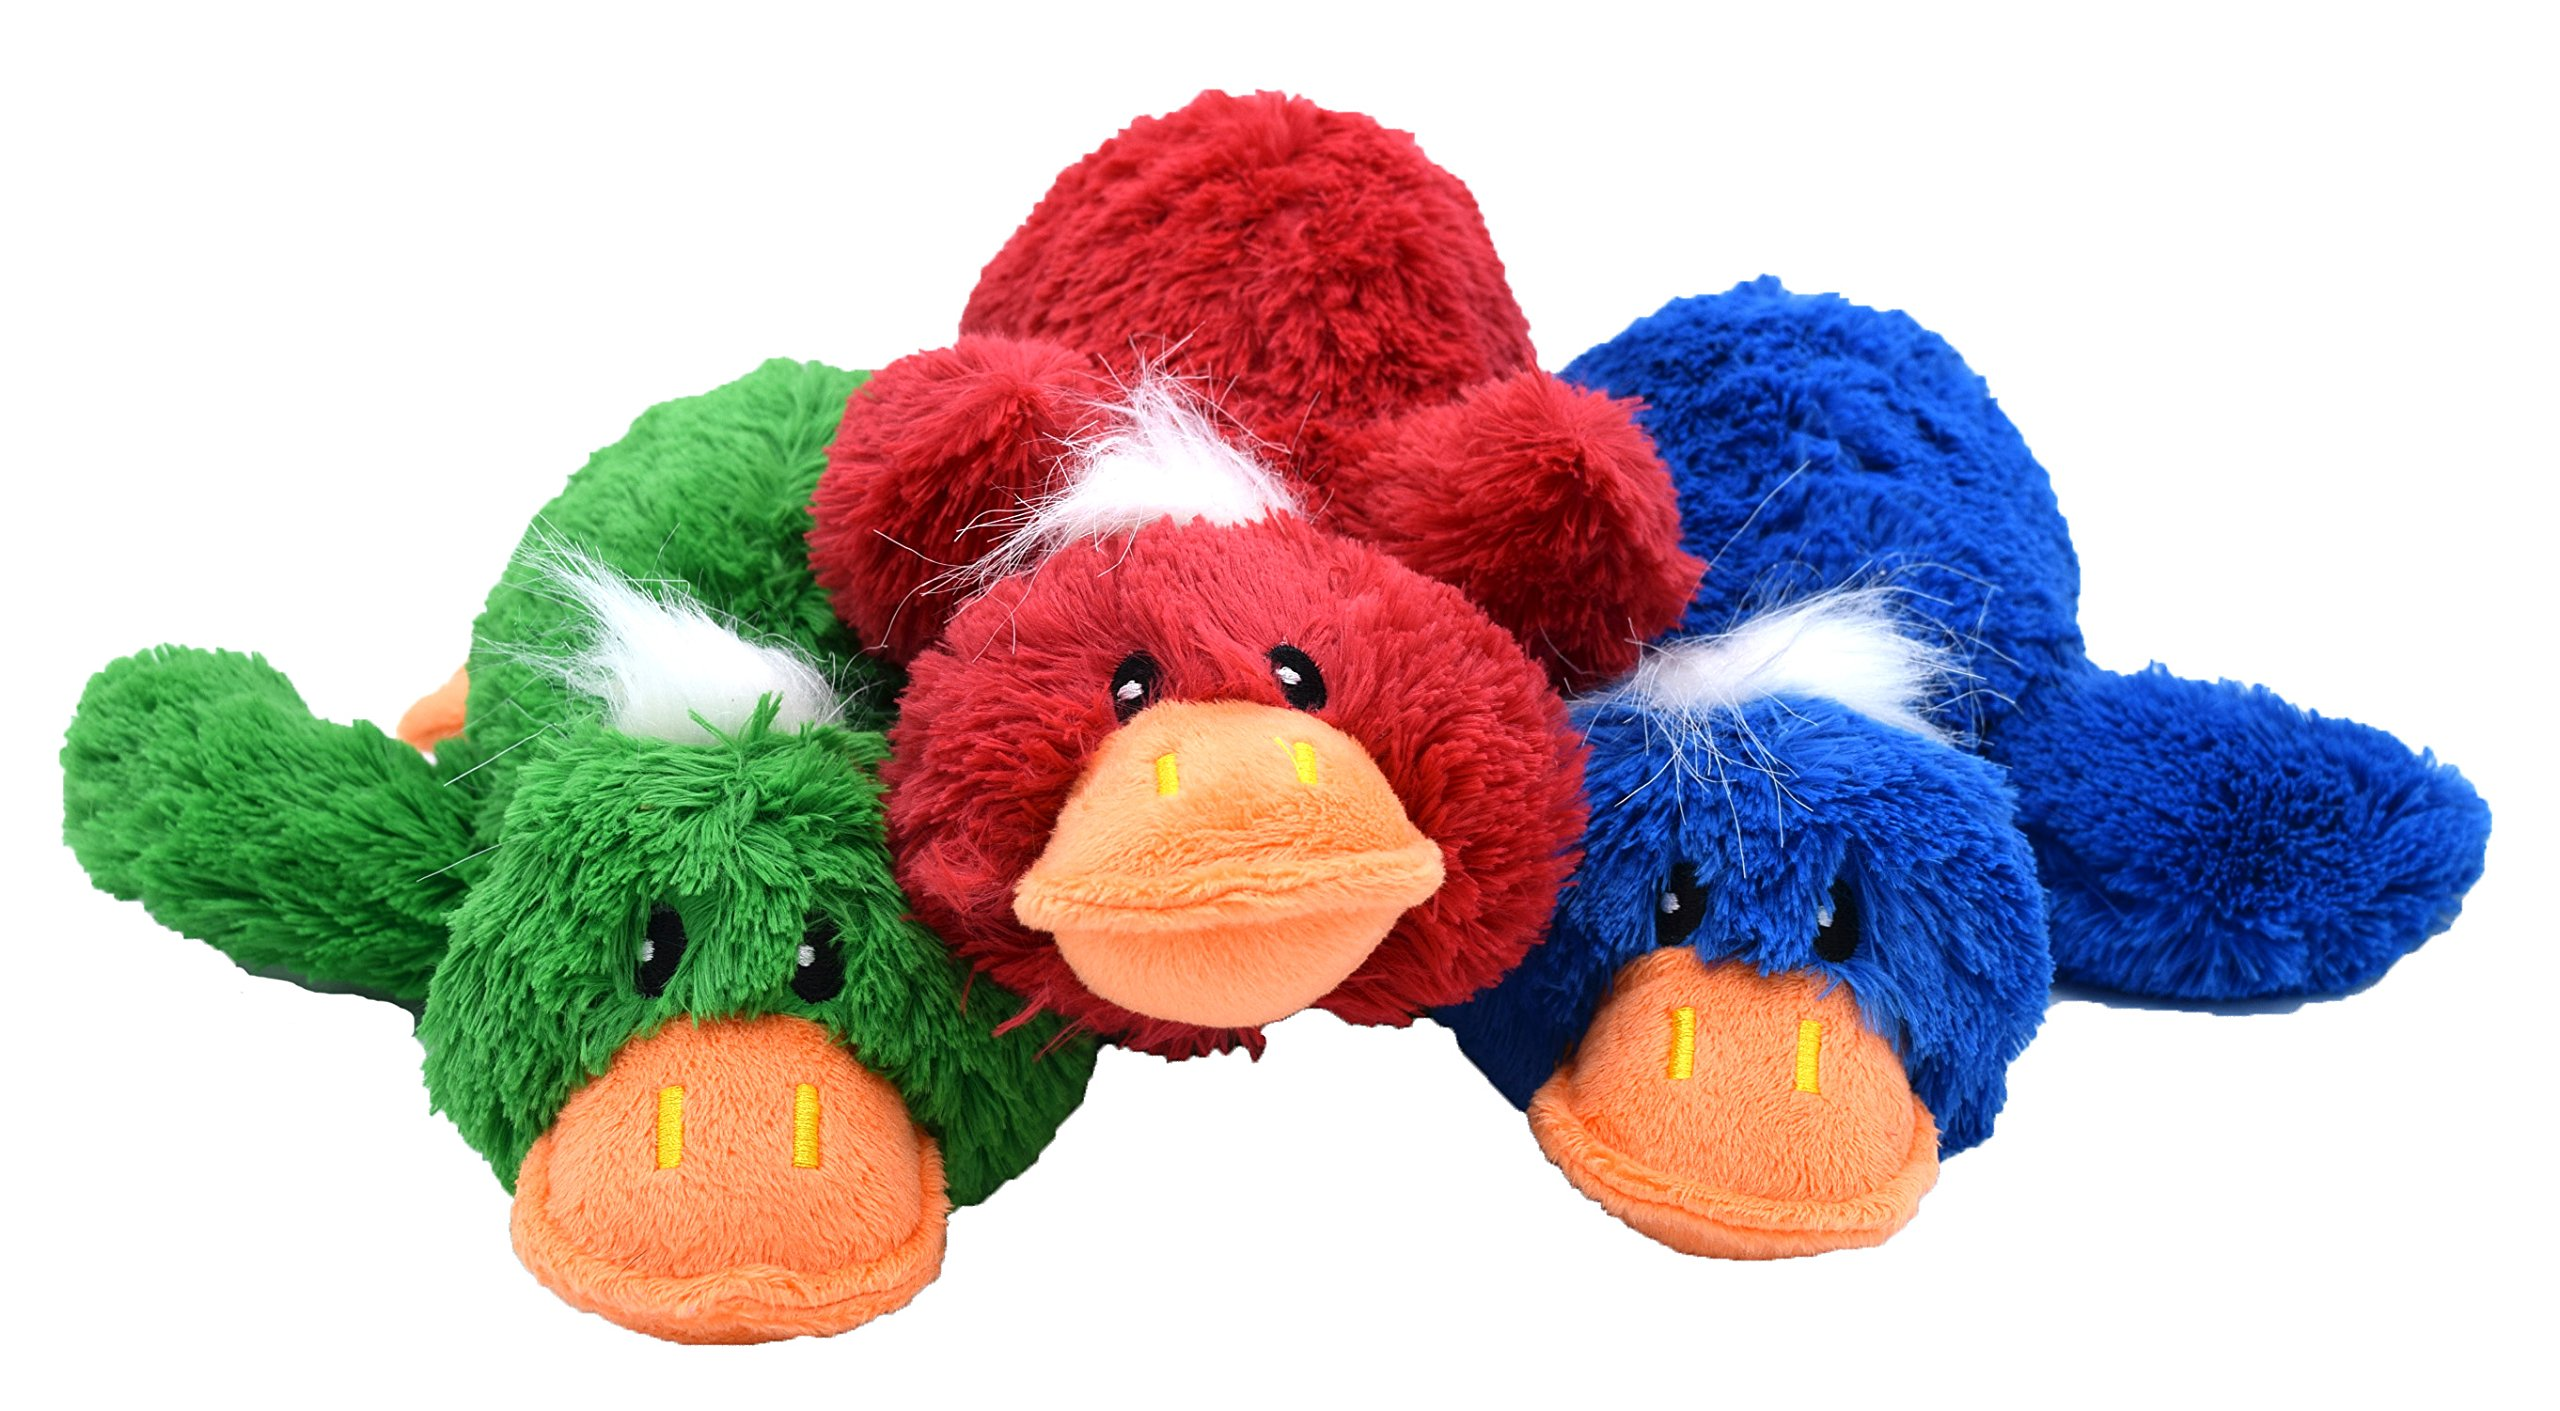 think! dog 12'' Plush Market Ducks with Rope Through Wings